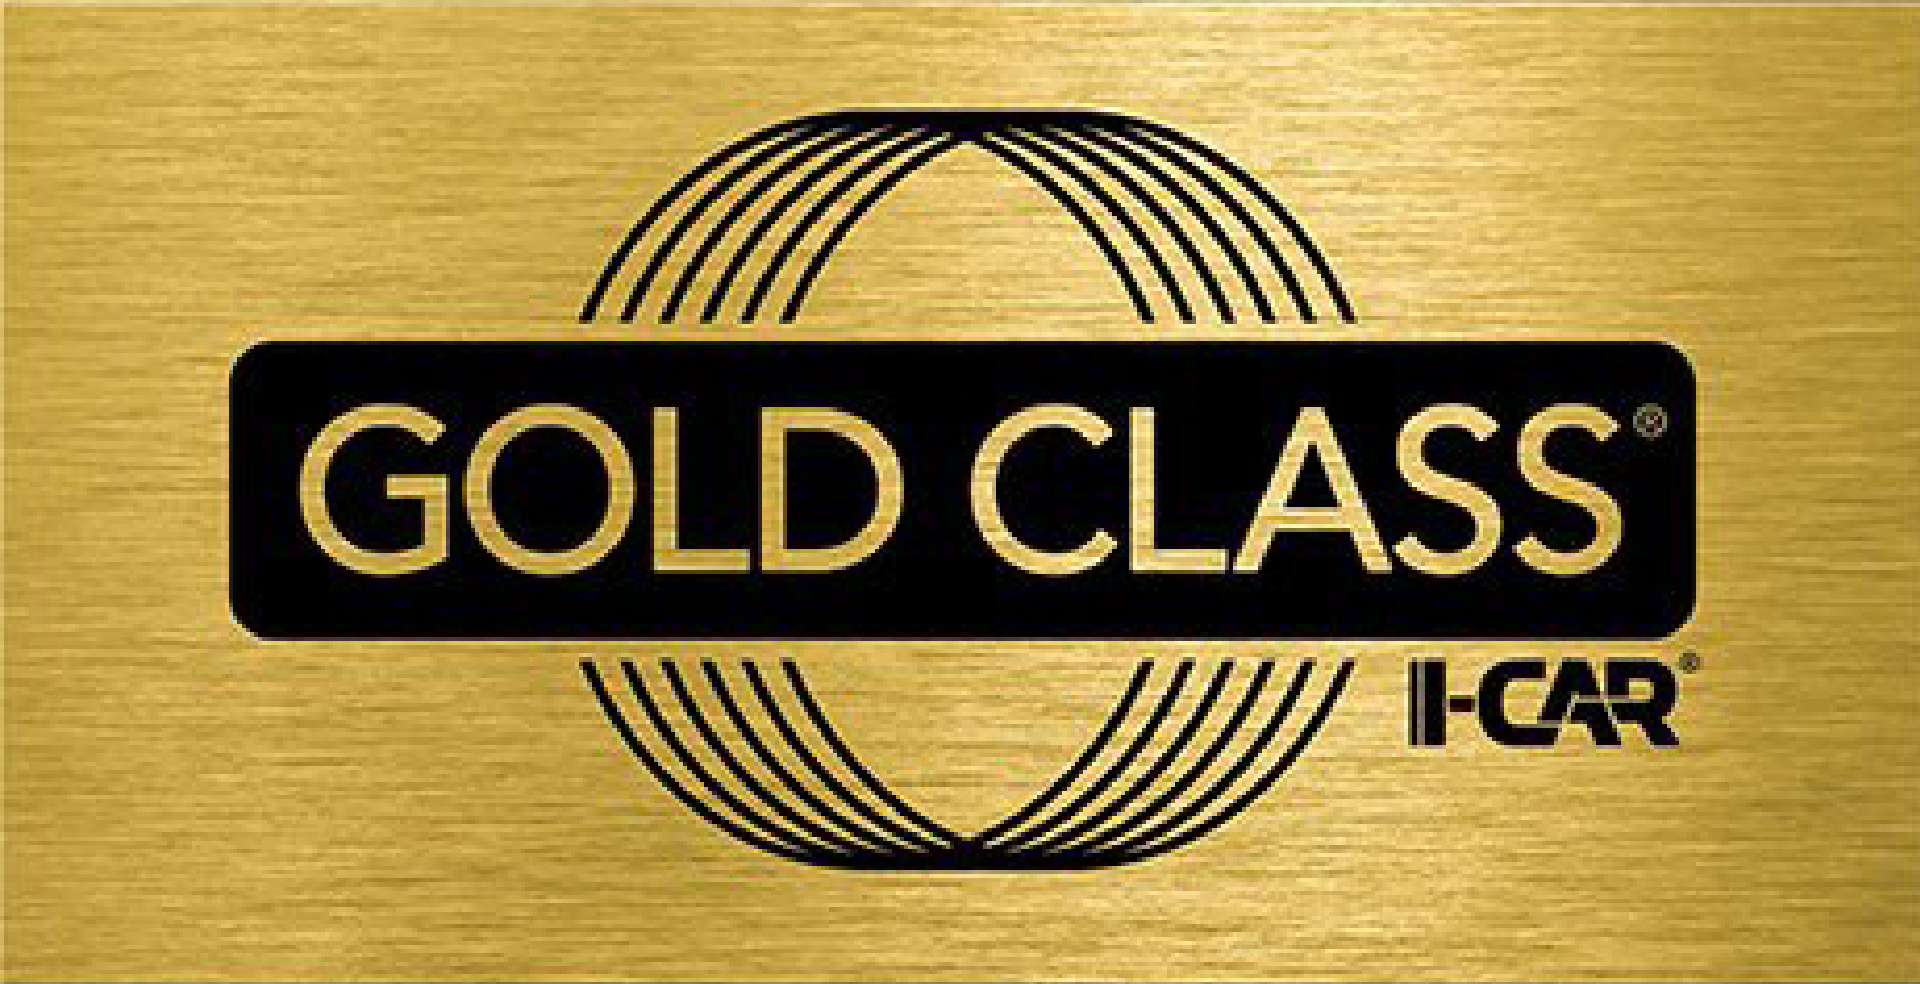 Butler Collision Center Gold Class I-CAR